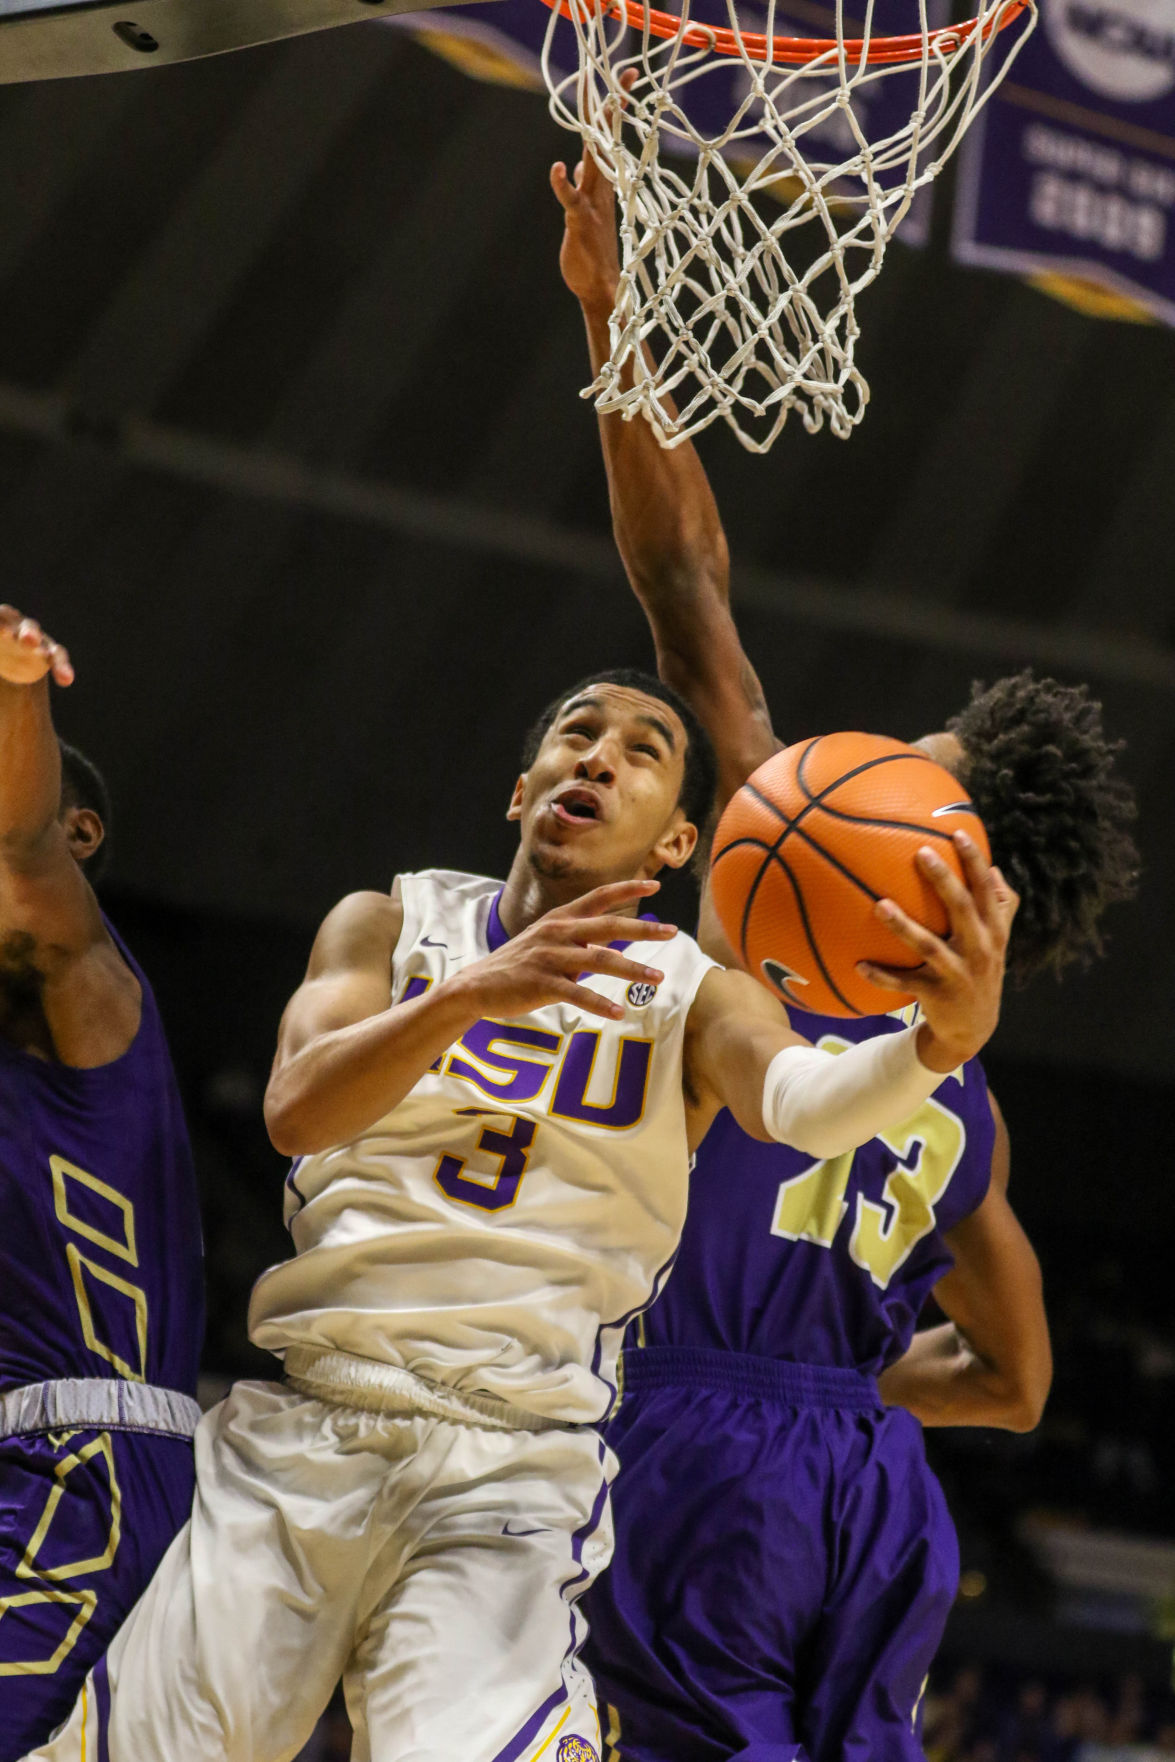 LSU Basketball vs Alcorn St.